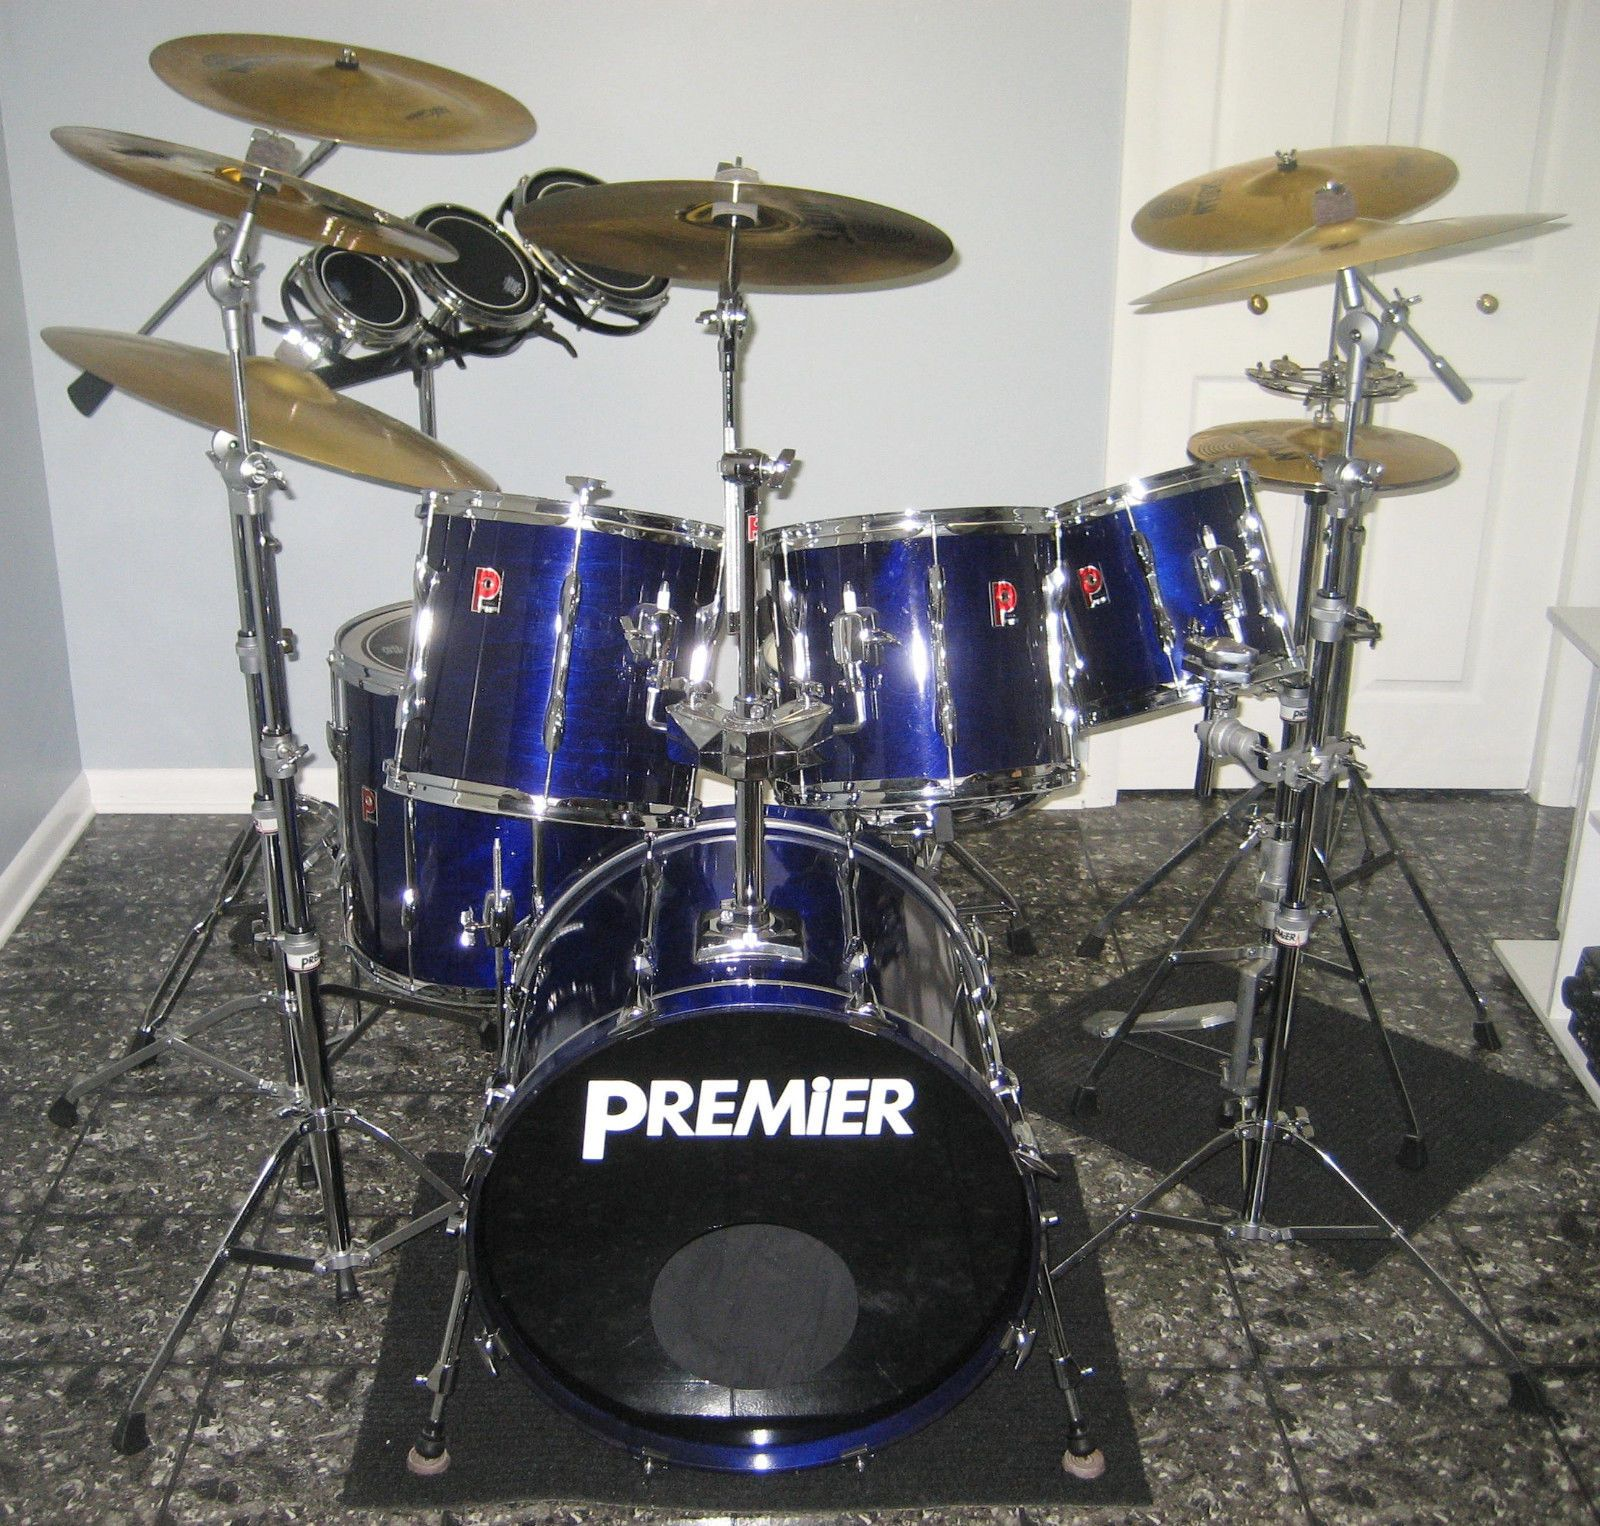 premier xpk 6 piece drum kit made in england everything included common shopping in 2019. Black Bedroom Furniture Sets. Home Design Ideas